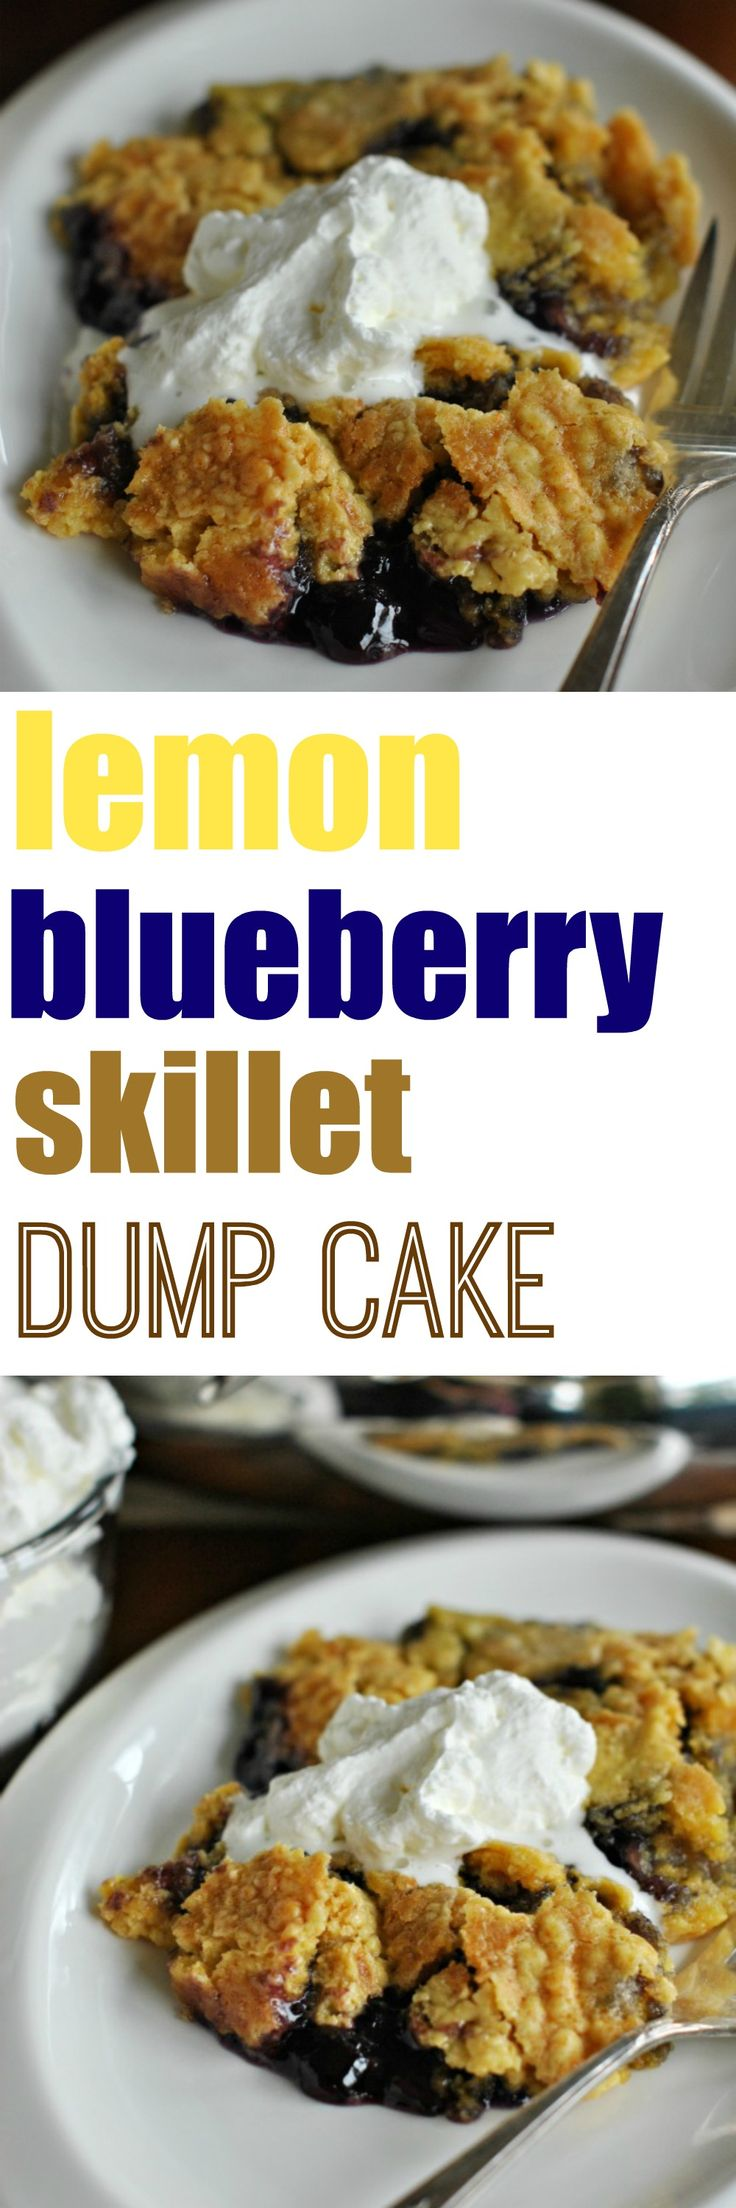 Lemon and Blueberry combined make a delicious Skillet Dump Cake. Serve with almond whipped cream!